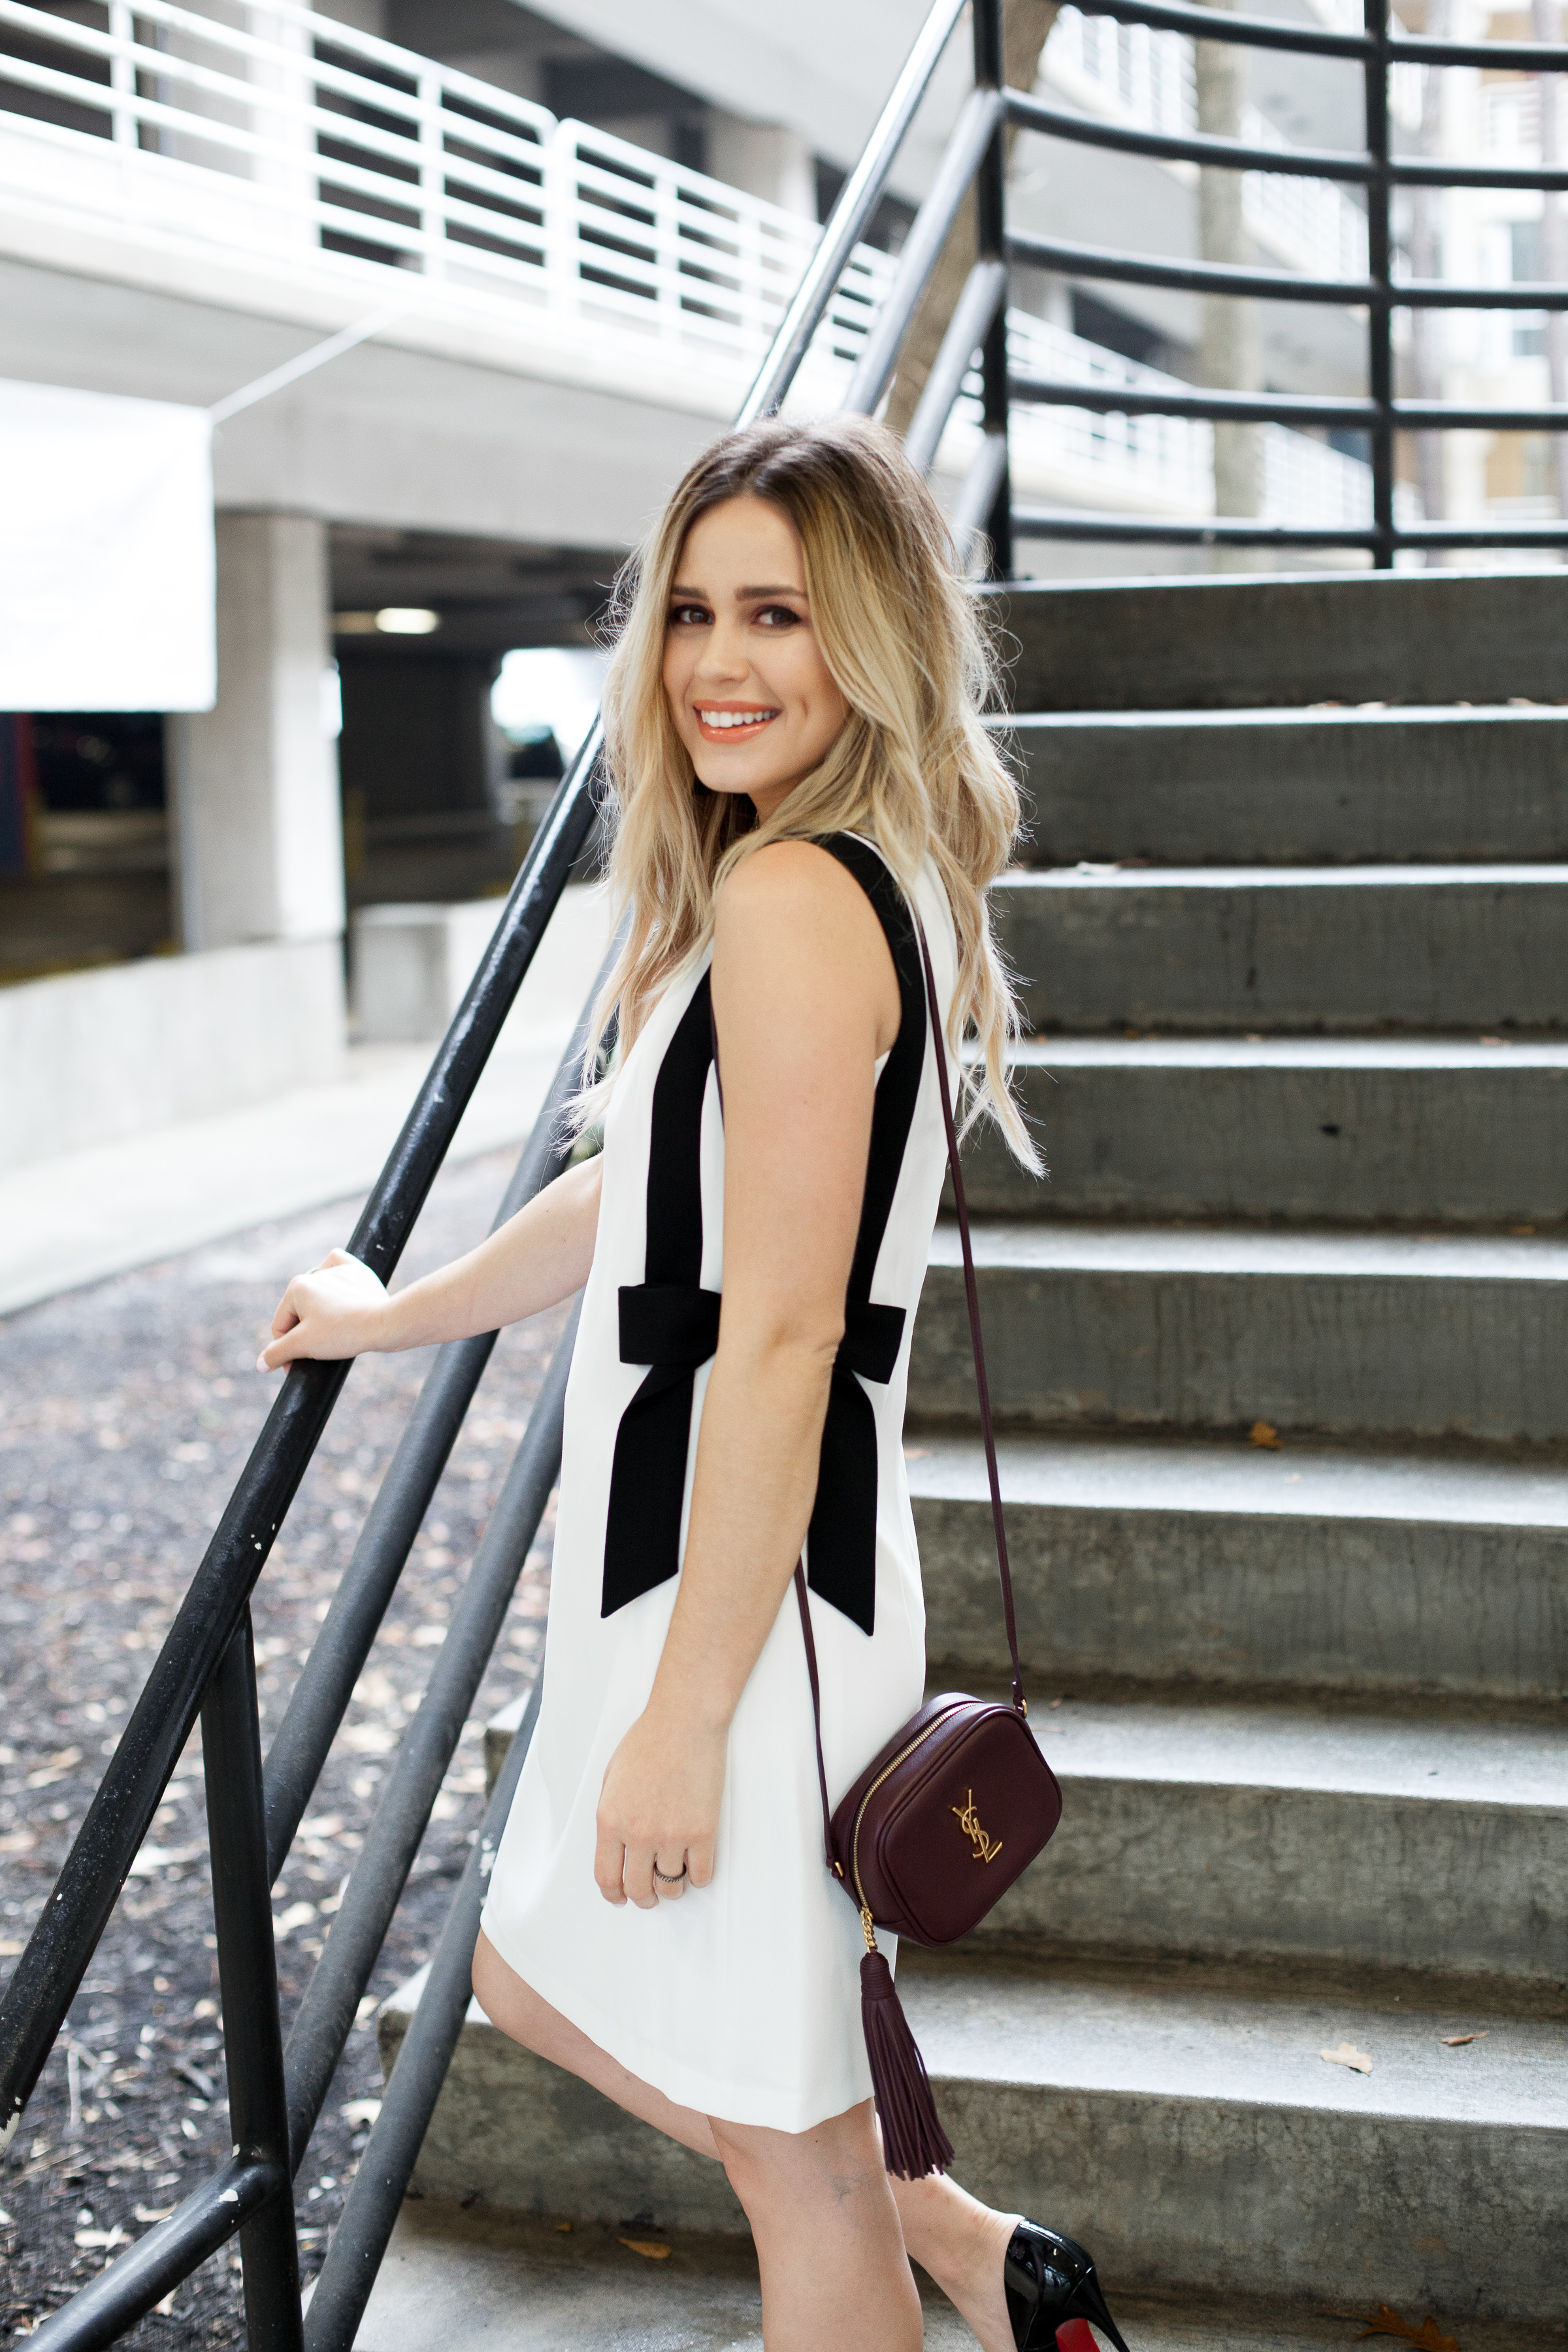 Shift dress | Feminine bow dress | Christian Louboutins | YSL crossbody bag | Date night outfit | Uptown with Elly Brown